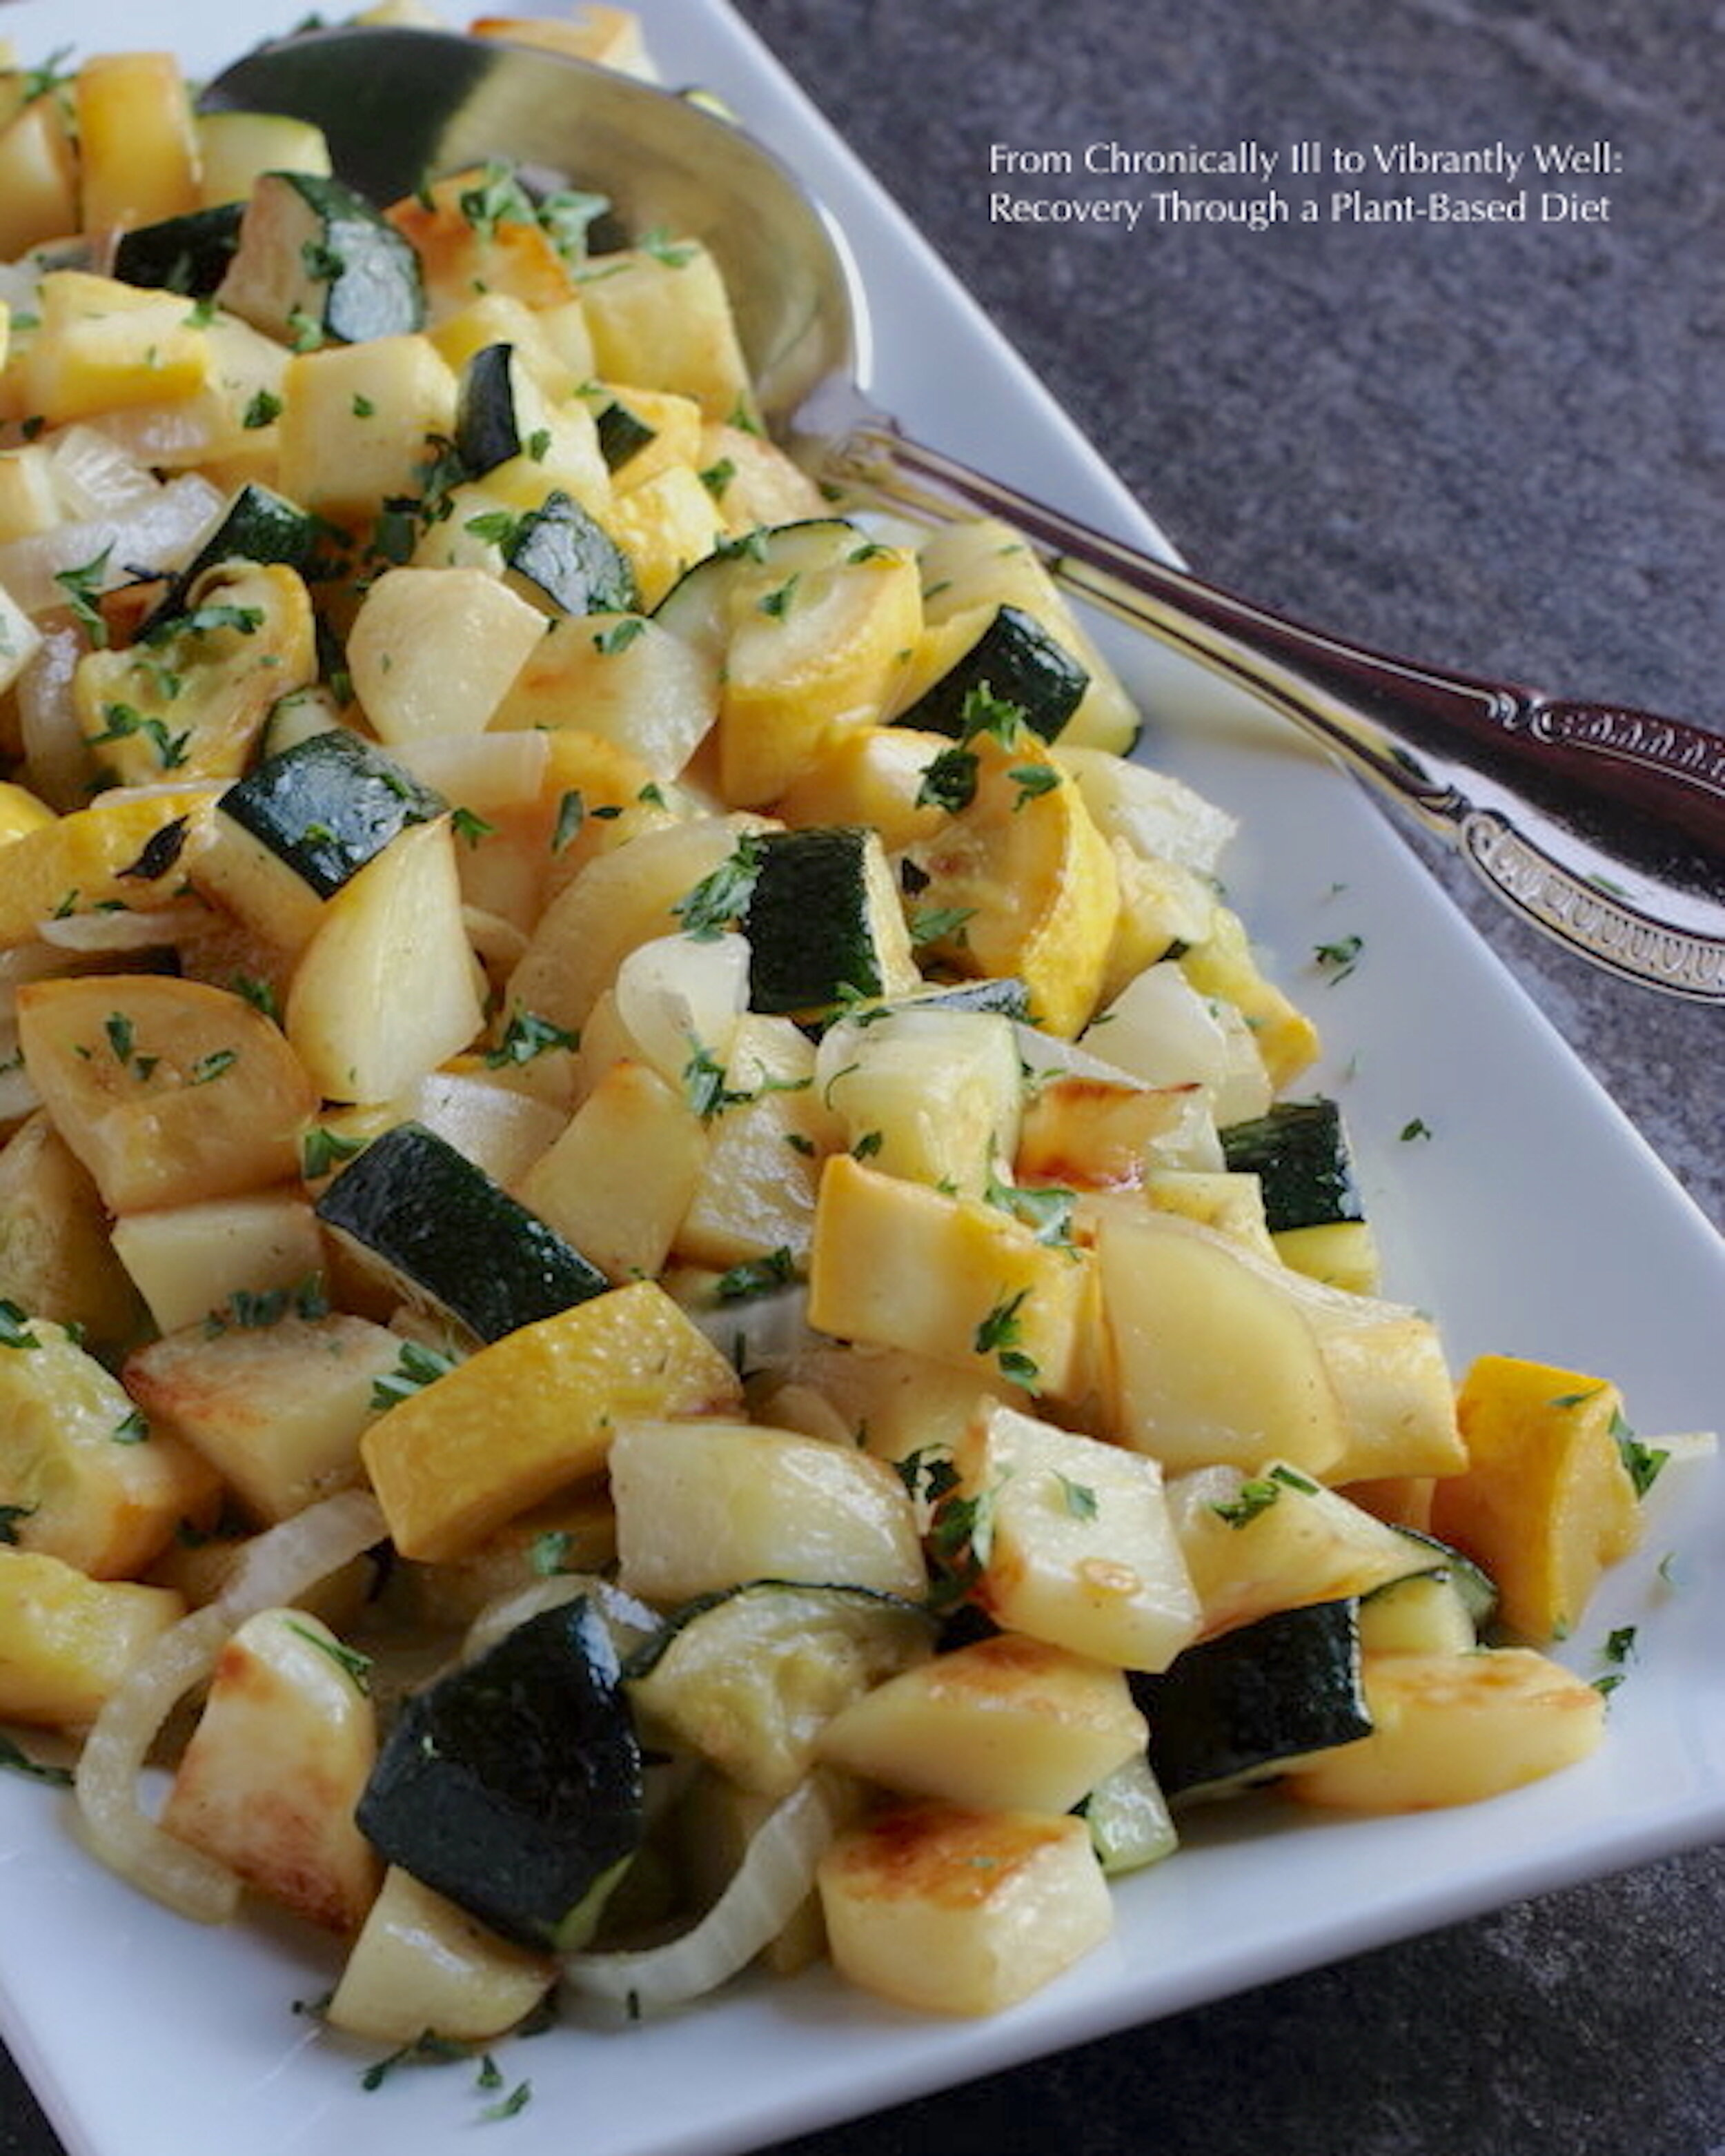 Summer Squash, Onions, and Potatoes